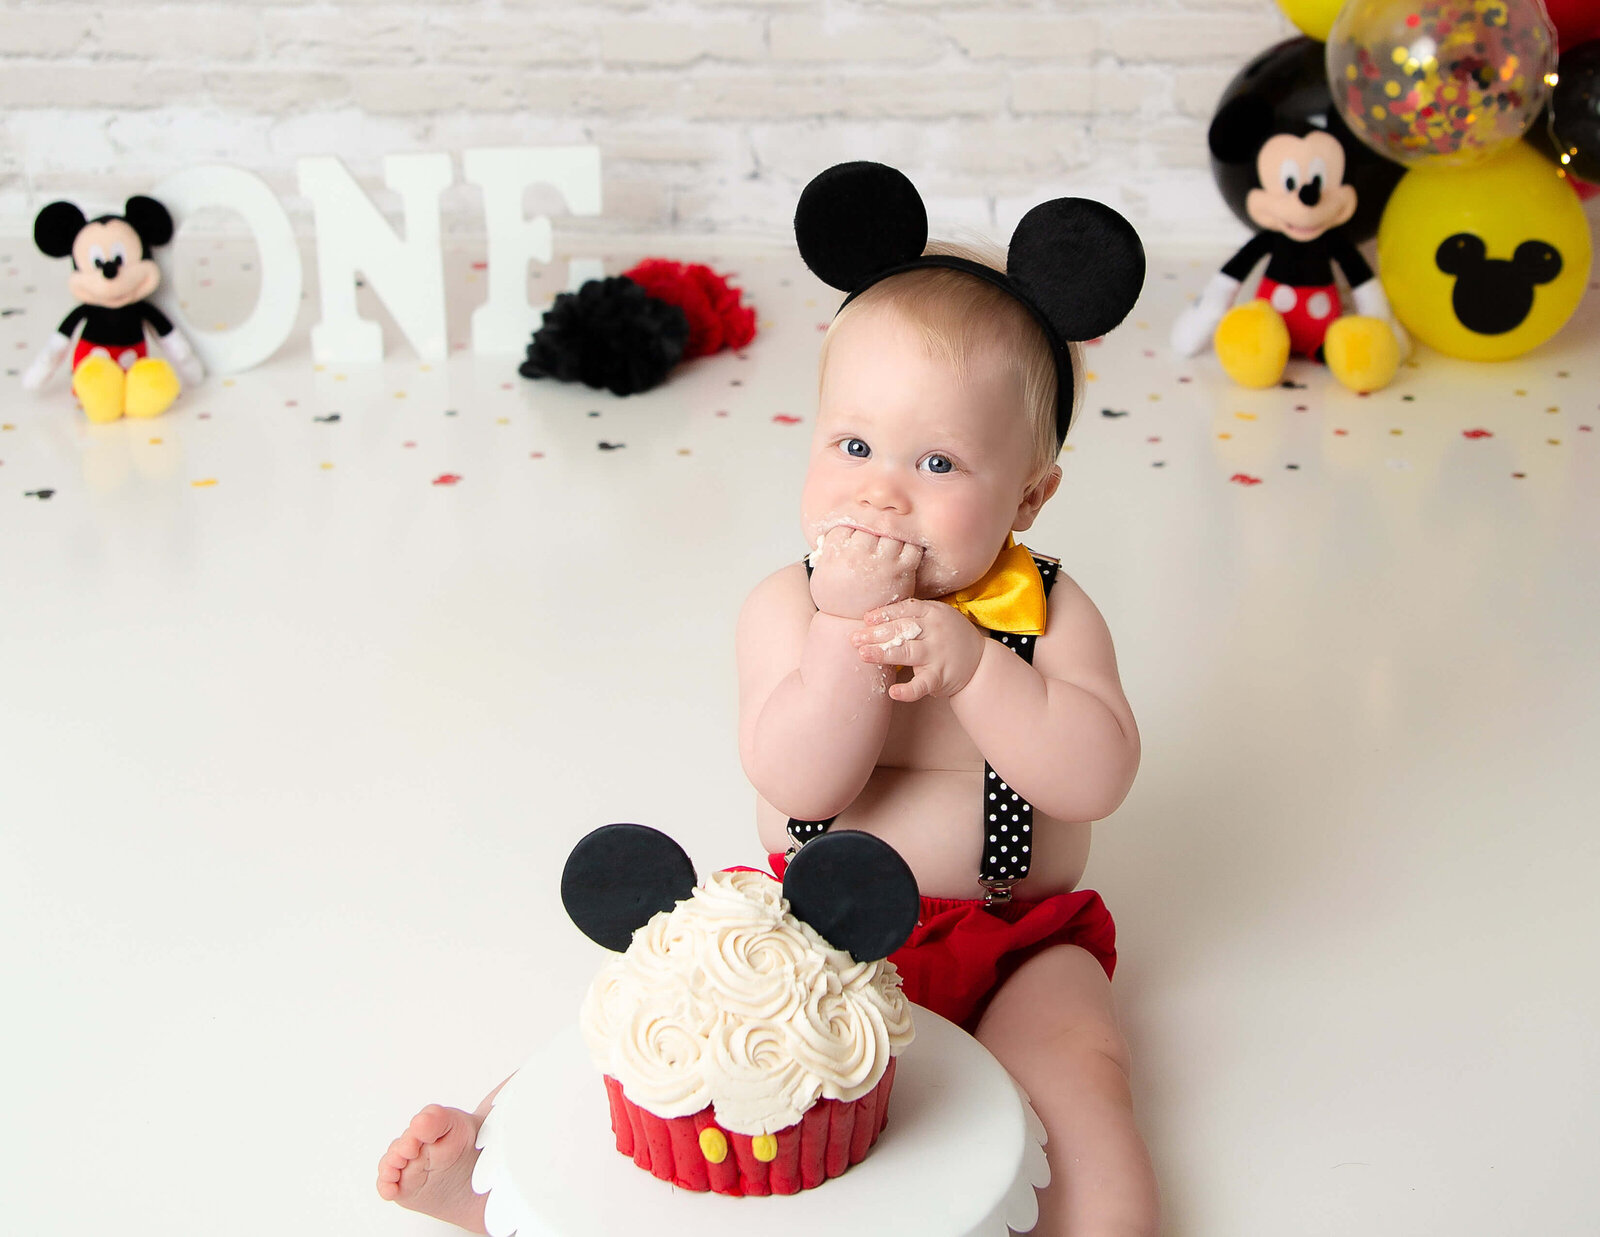 Mickey mouse cake smash at our Rochester, Ny studio.